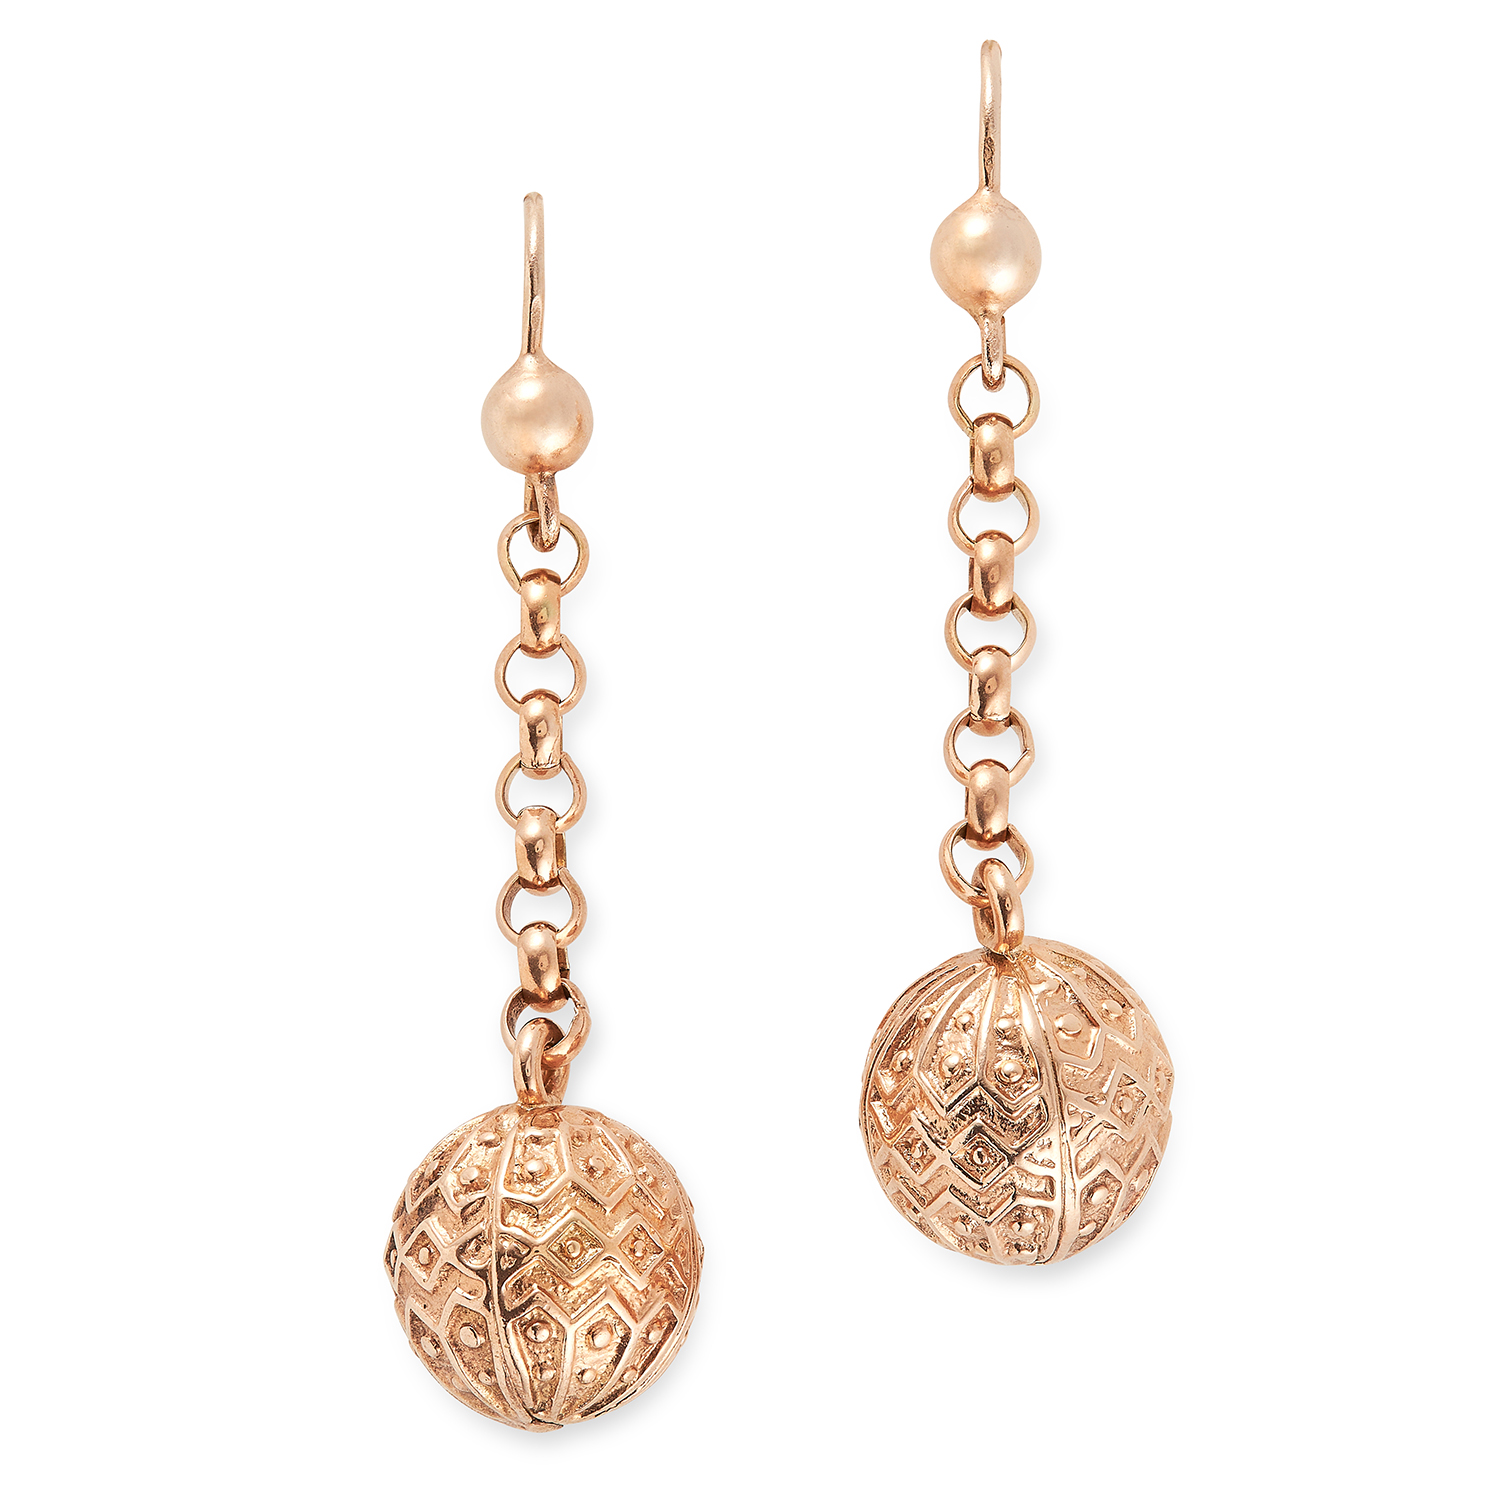 ANTIQUE GOLD DROP EARRINGS set with ornate gold beads, 4.5cm, 7.2g.